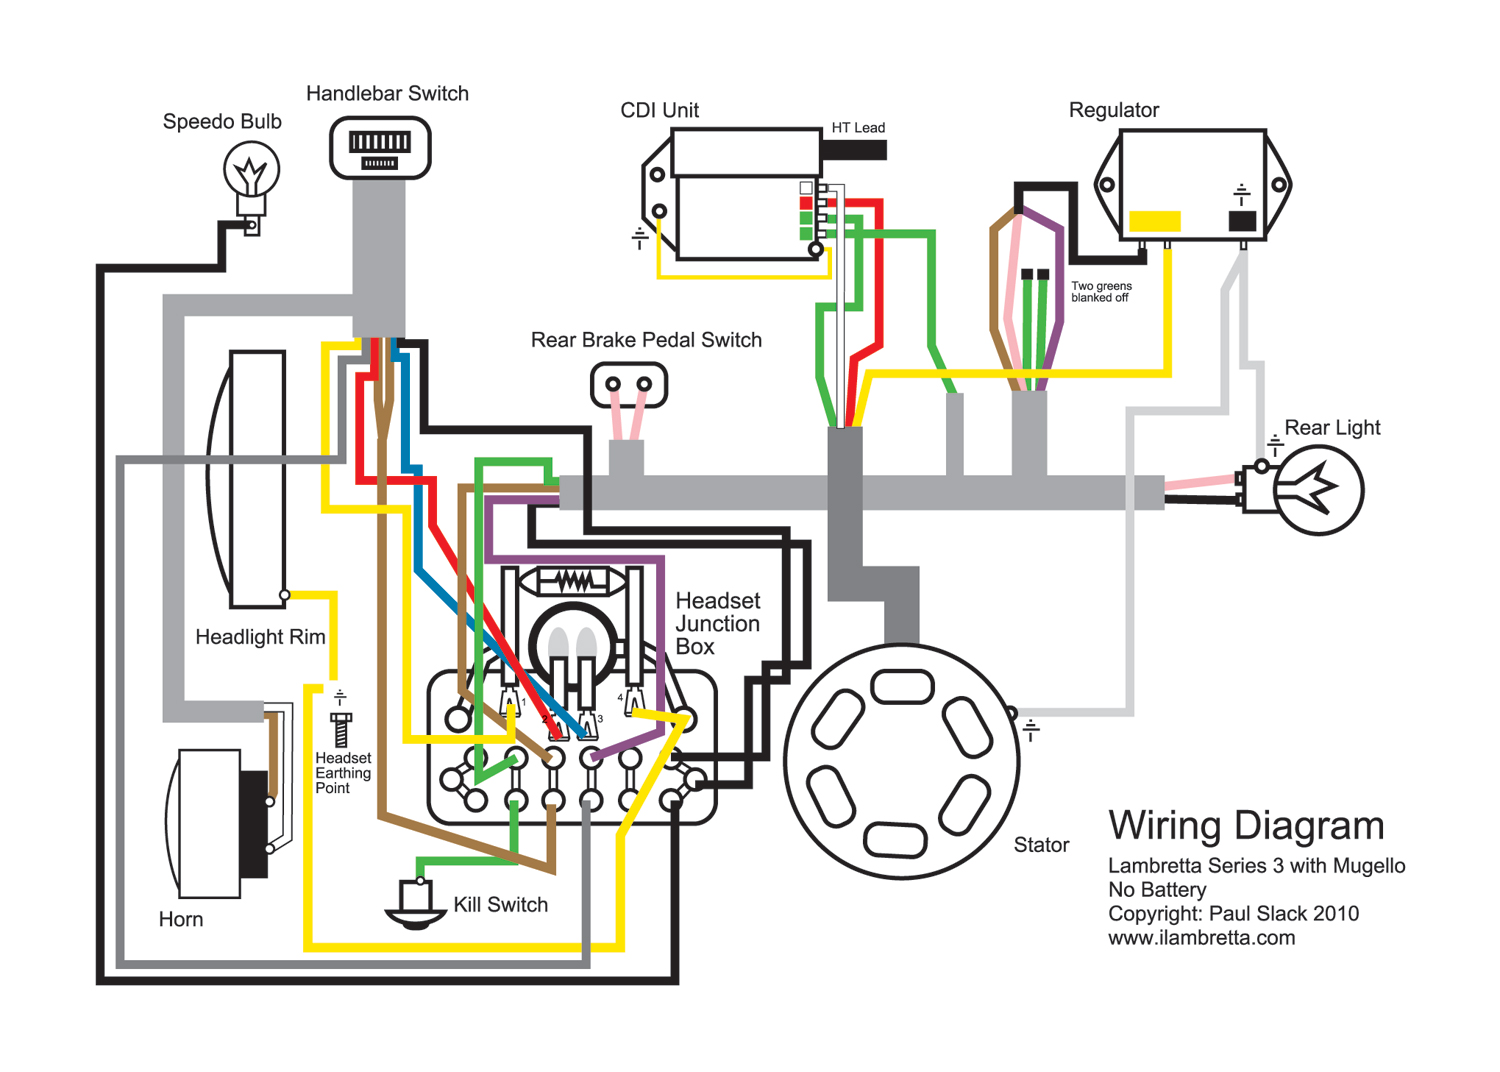 atv ignition wiring diagram wiring diagram blog polaris atv ignition switch wiring diagram atv ignition wiring diagram [ 1500 x 1072 Pixel ]